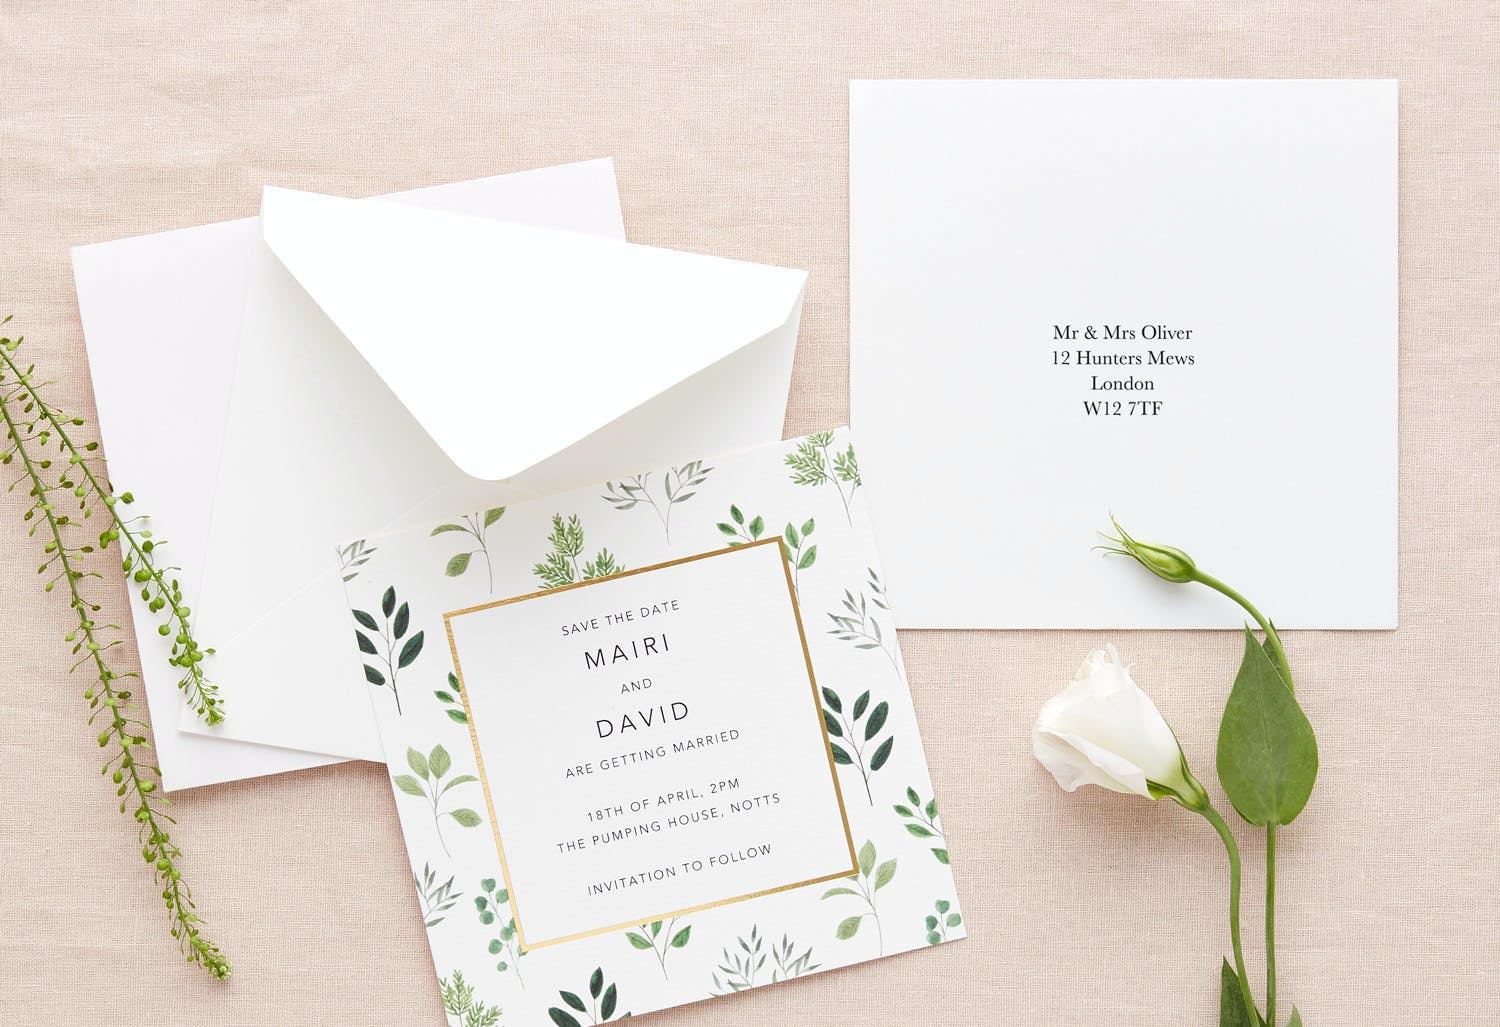 How to address wedding envelopes